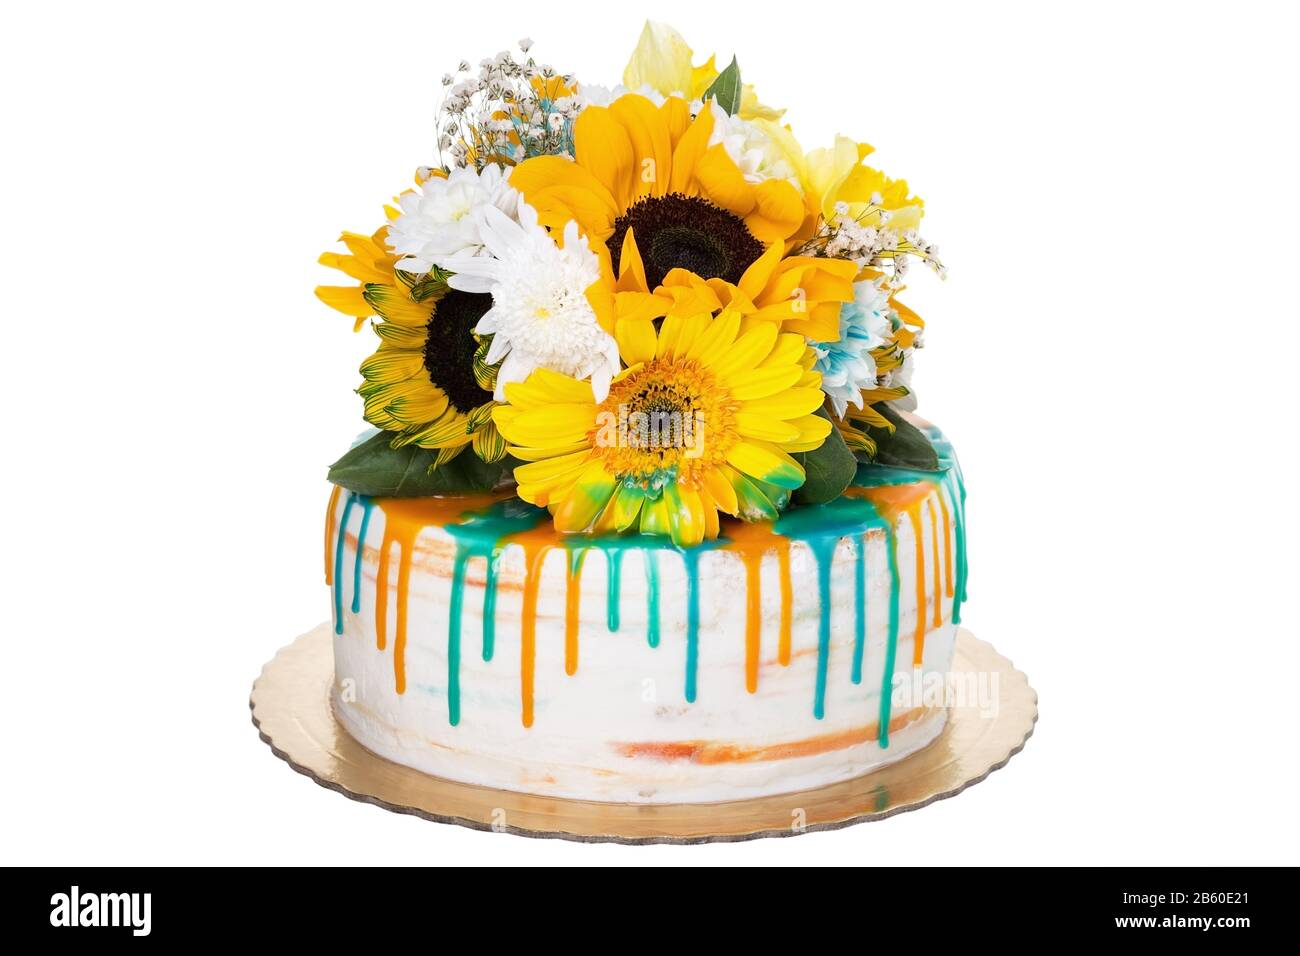 Miraculous Sunny Cheerful Birthday Cake From Sunflowers On A White Funny Birthday Cards Online Necthendildamsfinfo